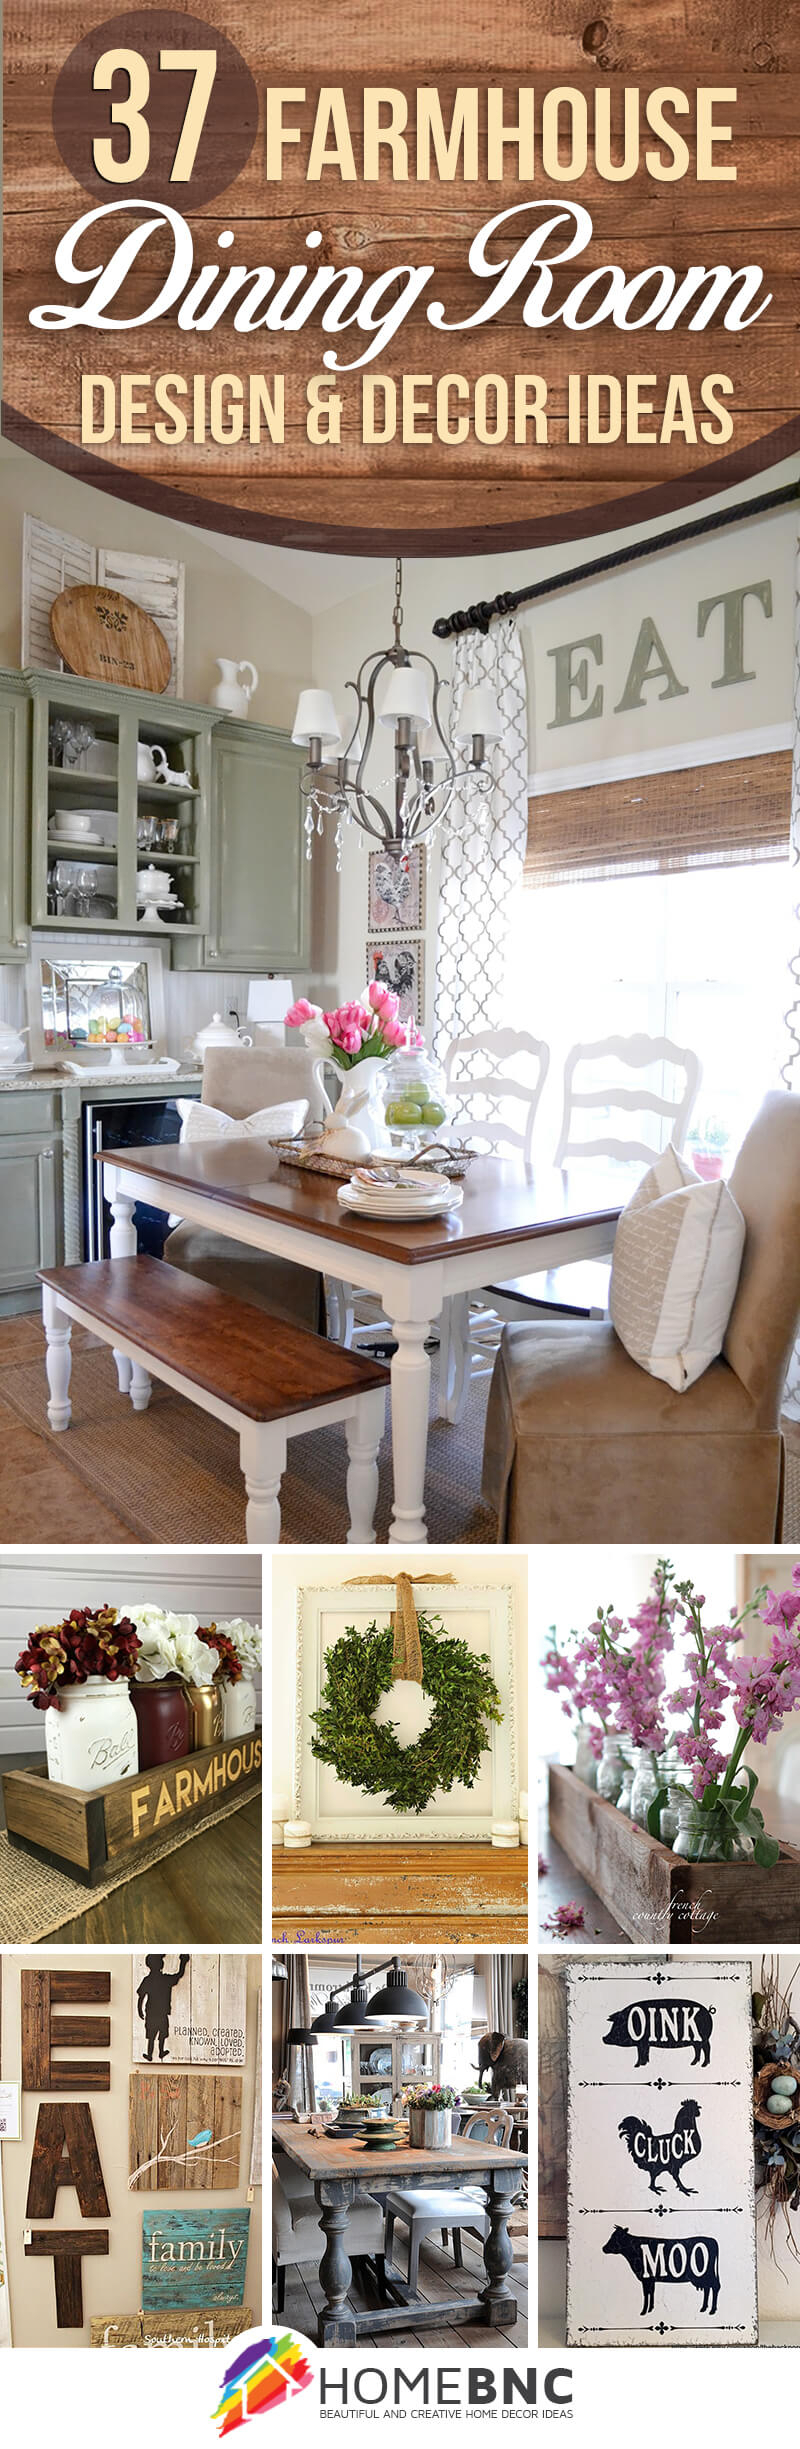 Well Known Casual Country Eat Here Retro Wall Decor With Regard To 37 Best Farmhouse Dining Room Design And Decor Ideas For 2019 (Gallery 12 of 20)